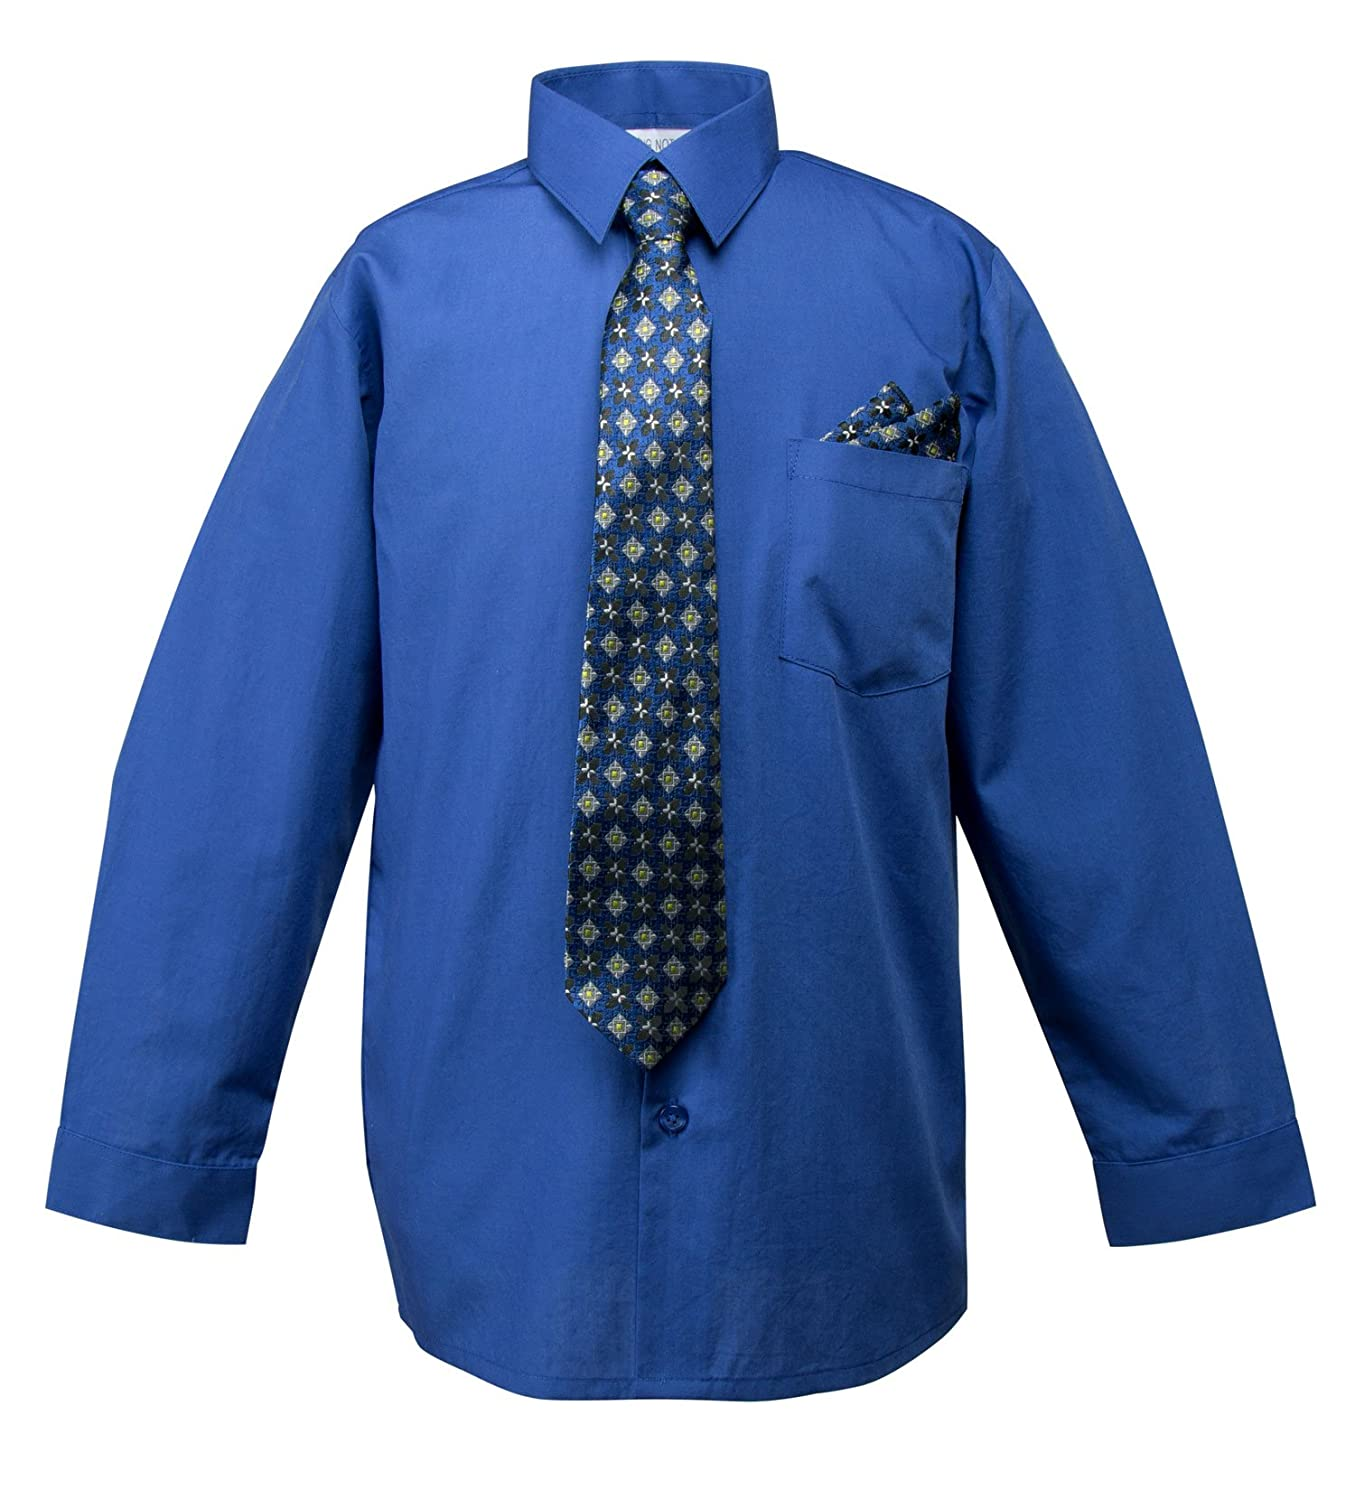 Spring Notion Baby Boys Dress Shirt with Tie and Handkerchief Set